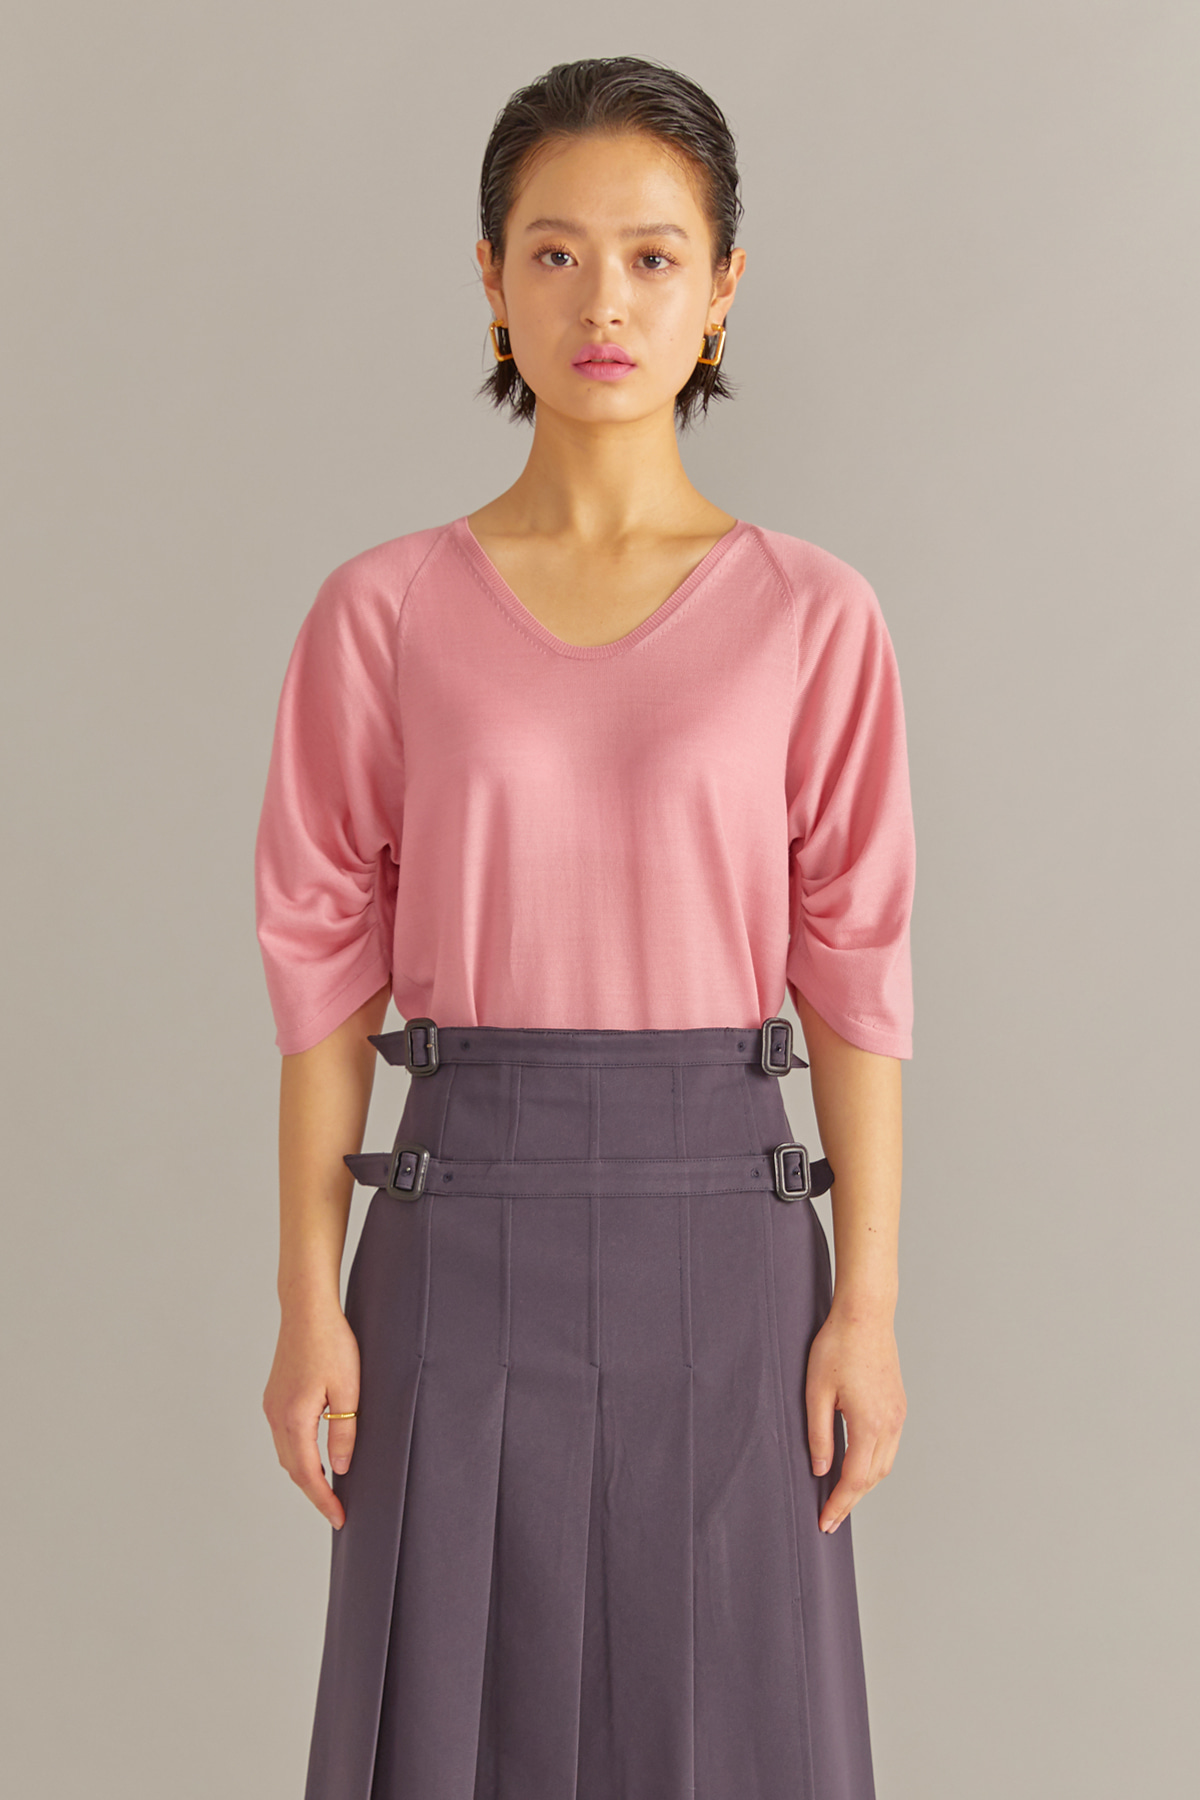 Volumed Sleeves Cashmere Pullover Pink